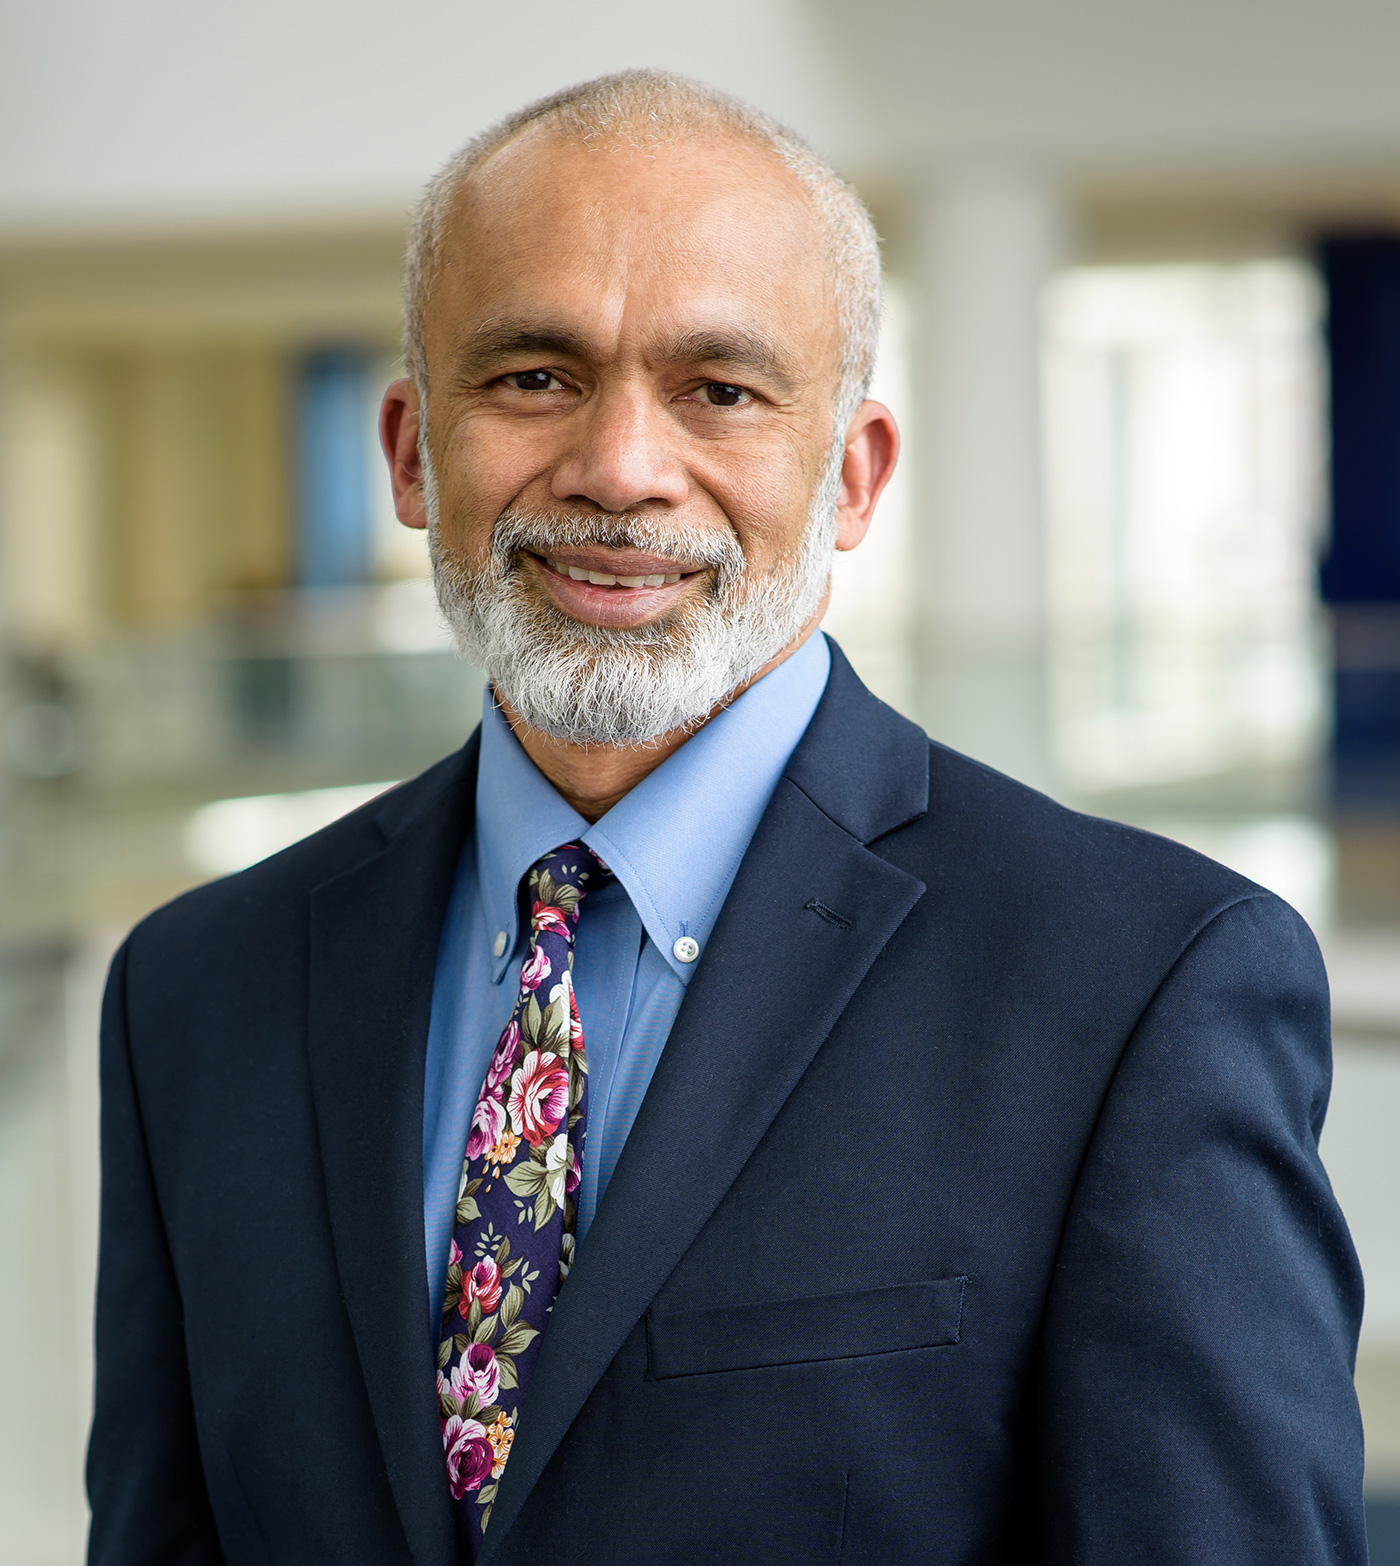 Luvai F. Motiwalla is a Professor in the Manning School of Business - Operations and Information Systems Department at UMass Lowell.